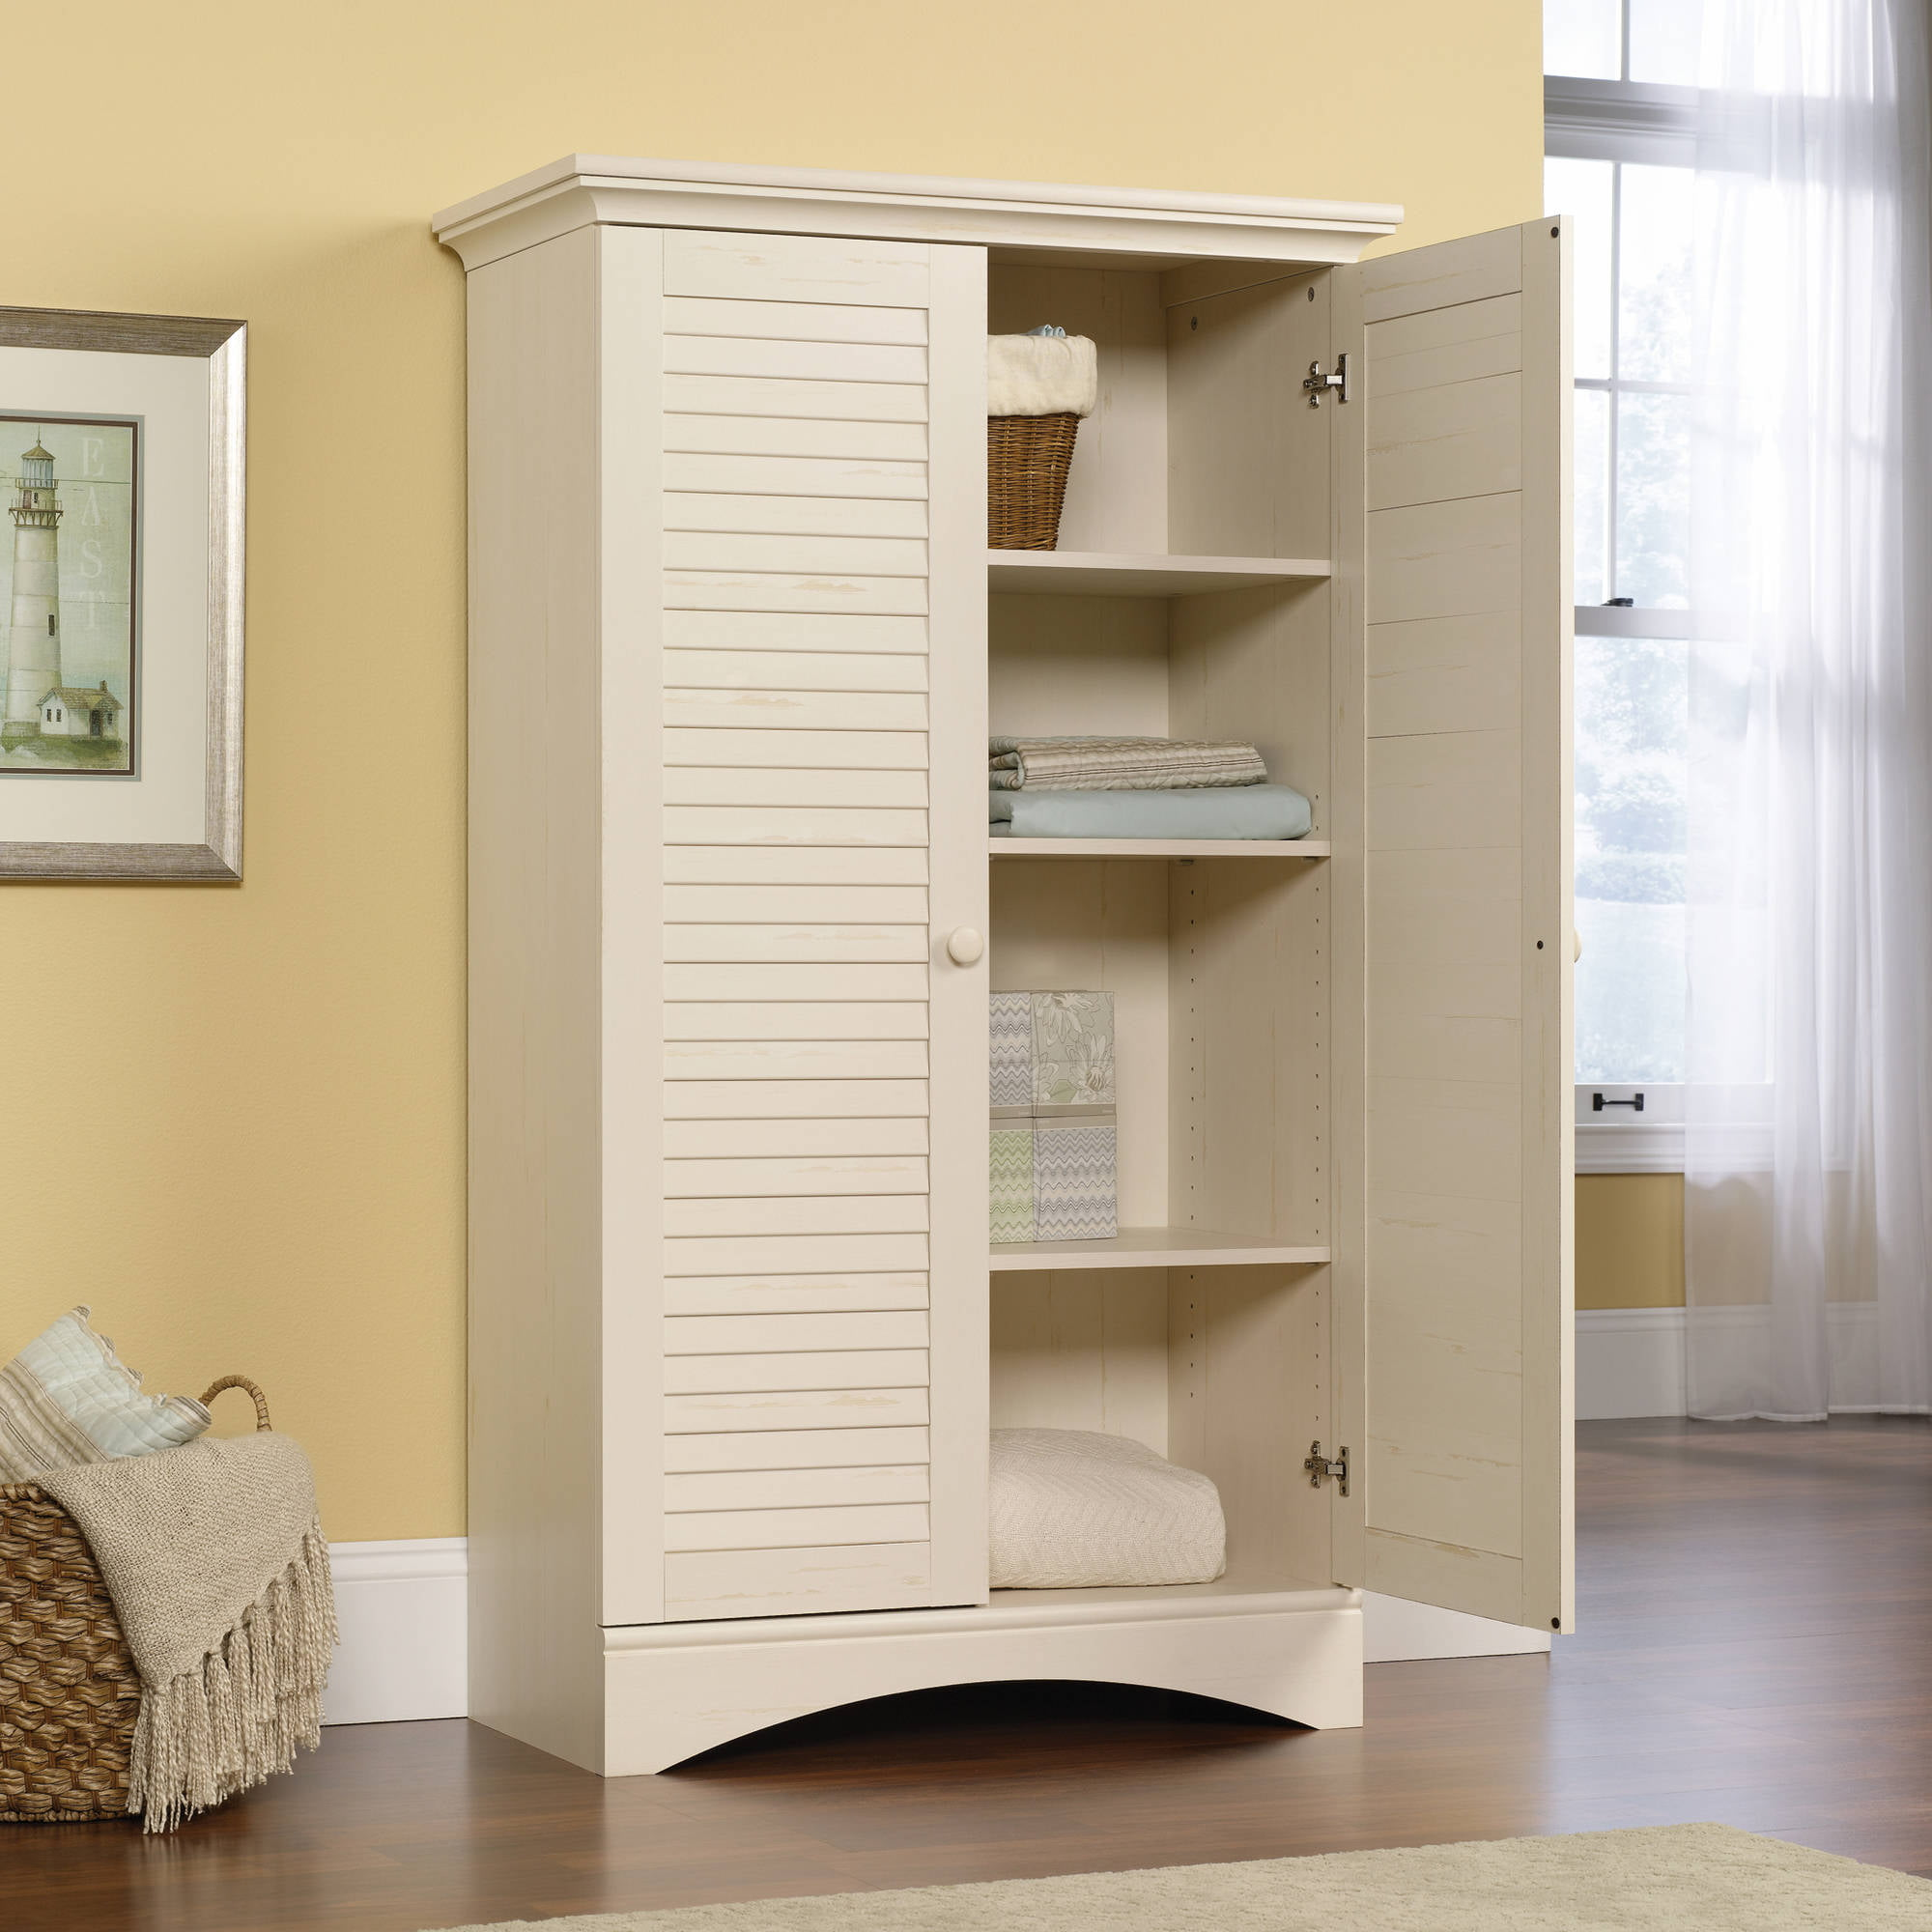 Sauder Harbor View Storage Cabinet, Multiple Colors - Walmart.com